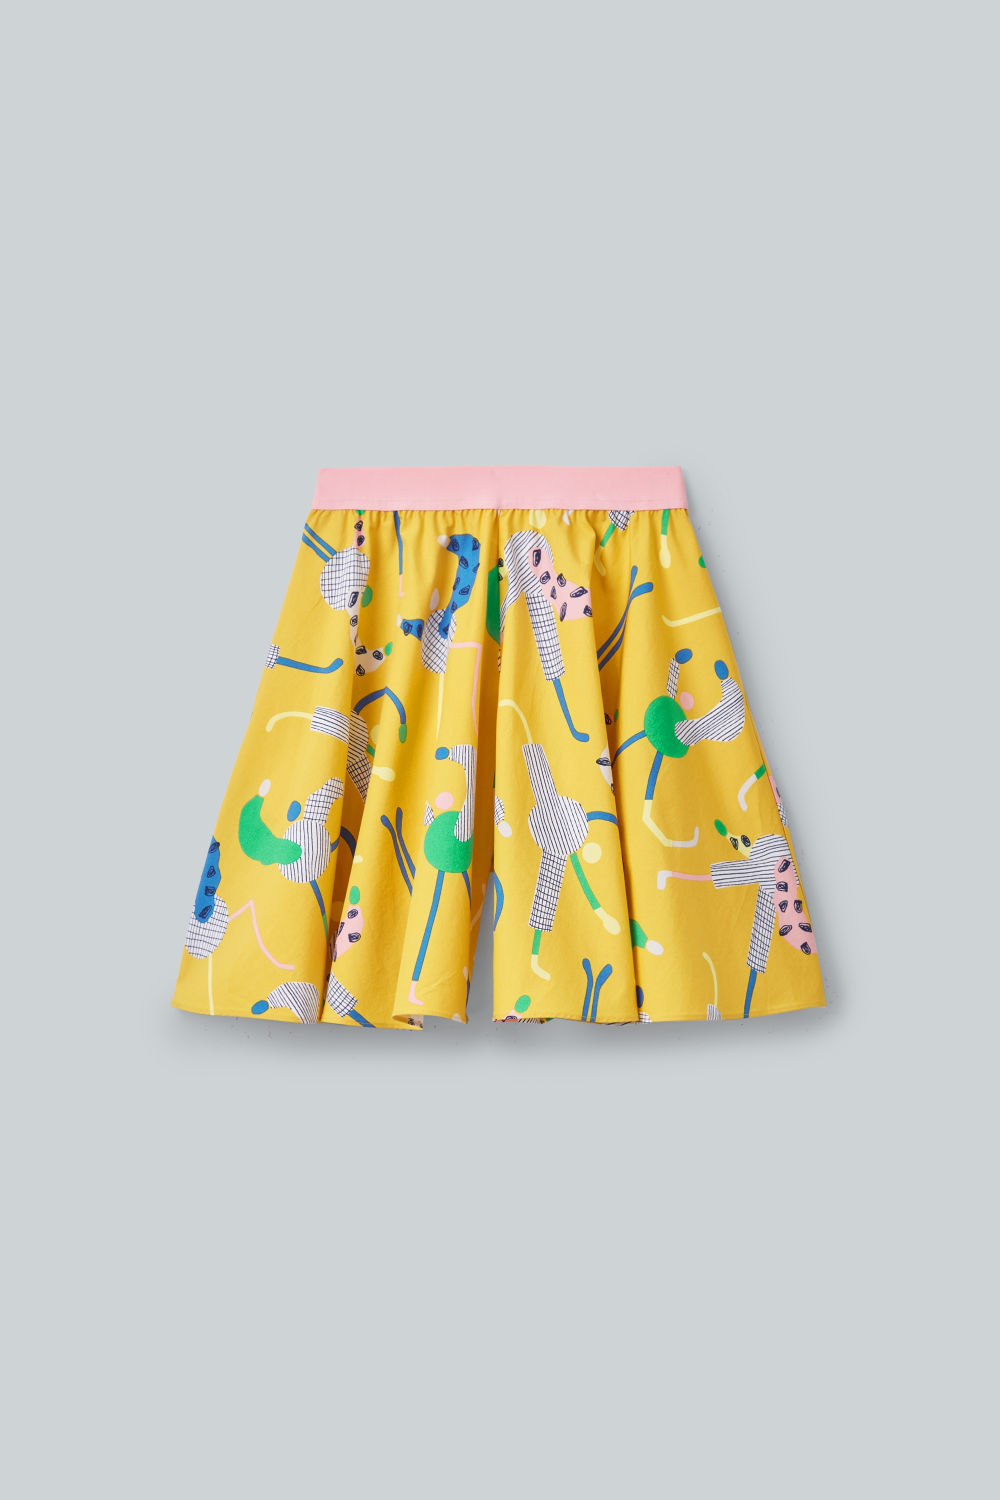 ILLUSTRATED CULOTTES